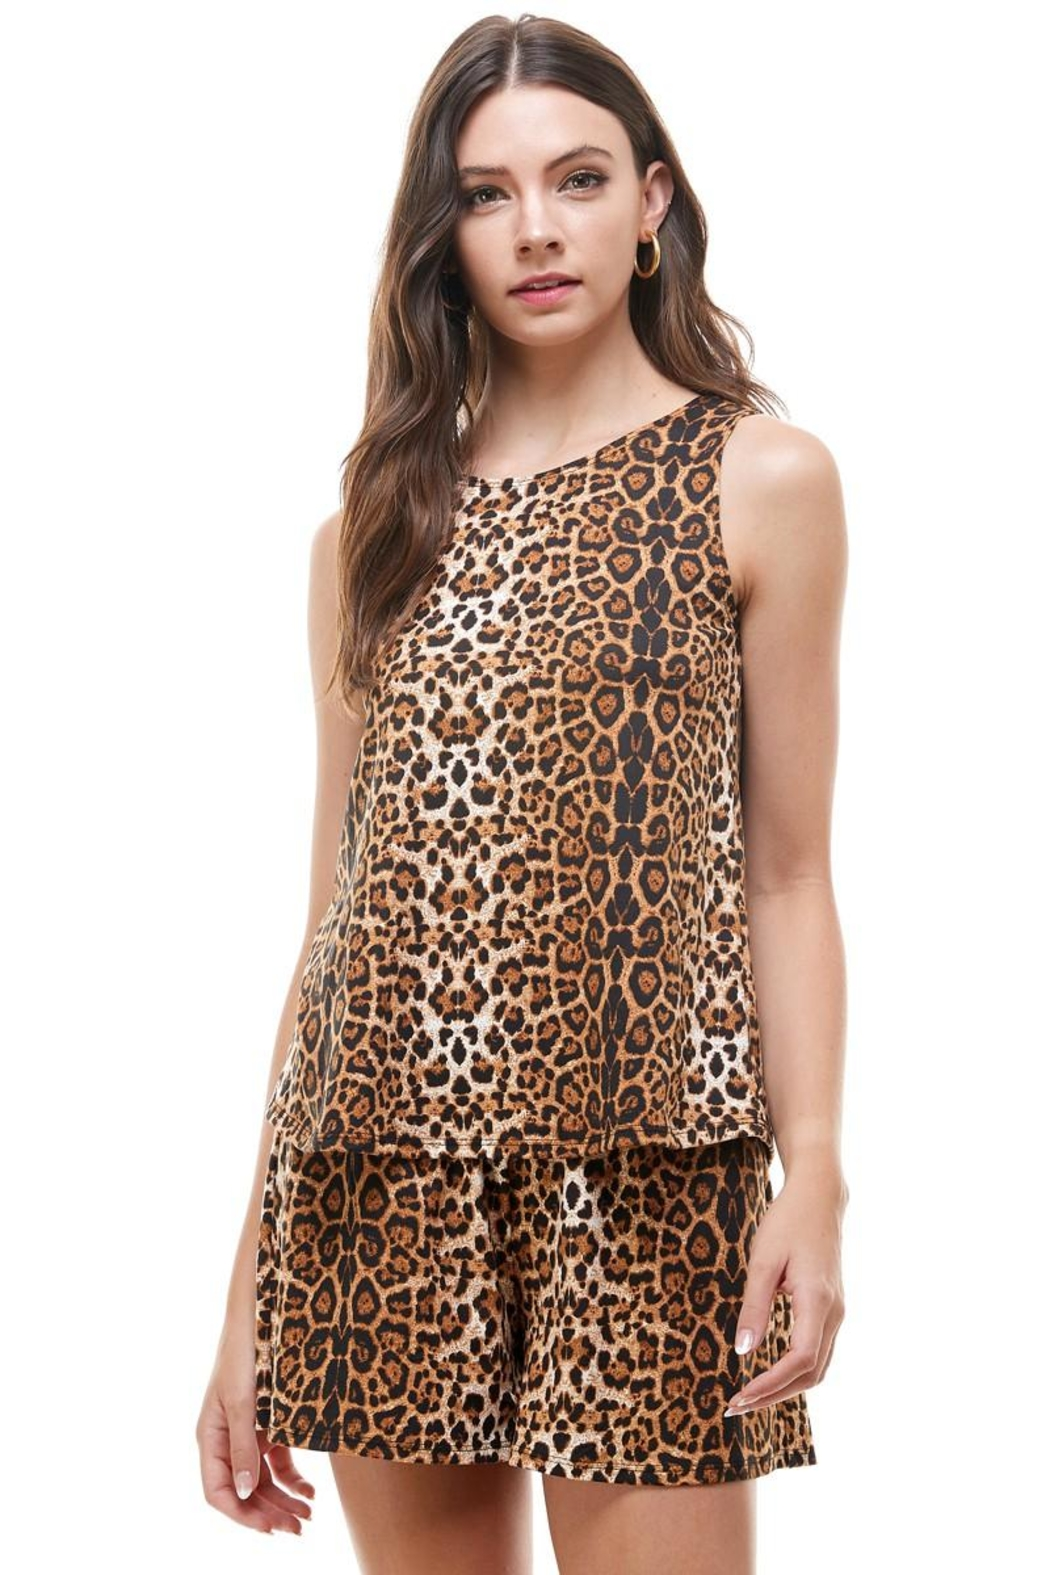 Miley and Molly Lounge Wear Set Zebra Leopard Animal Sleeveless Top And Short - Front Cropped Image